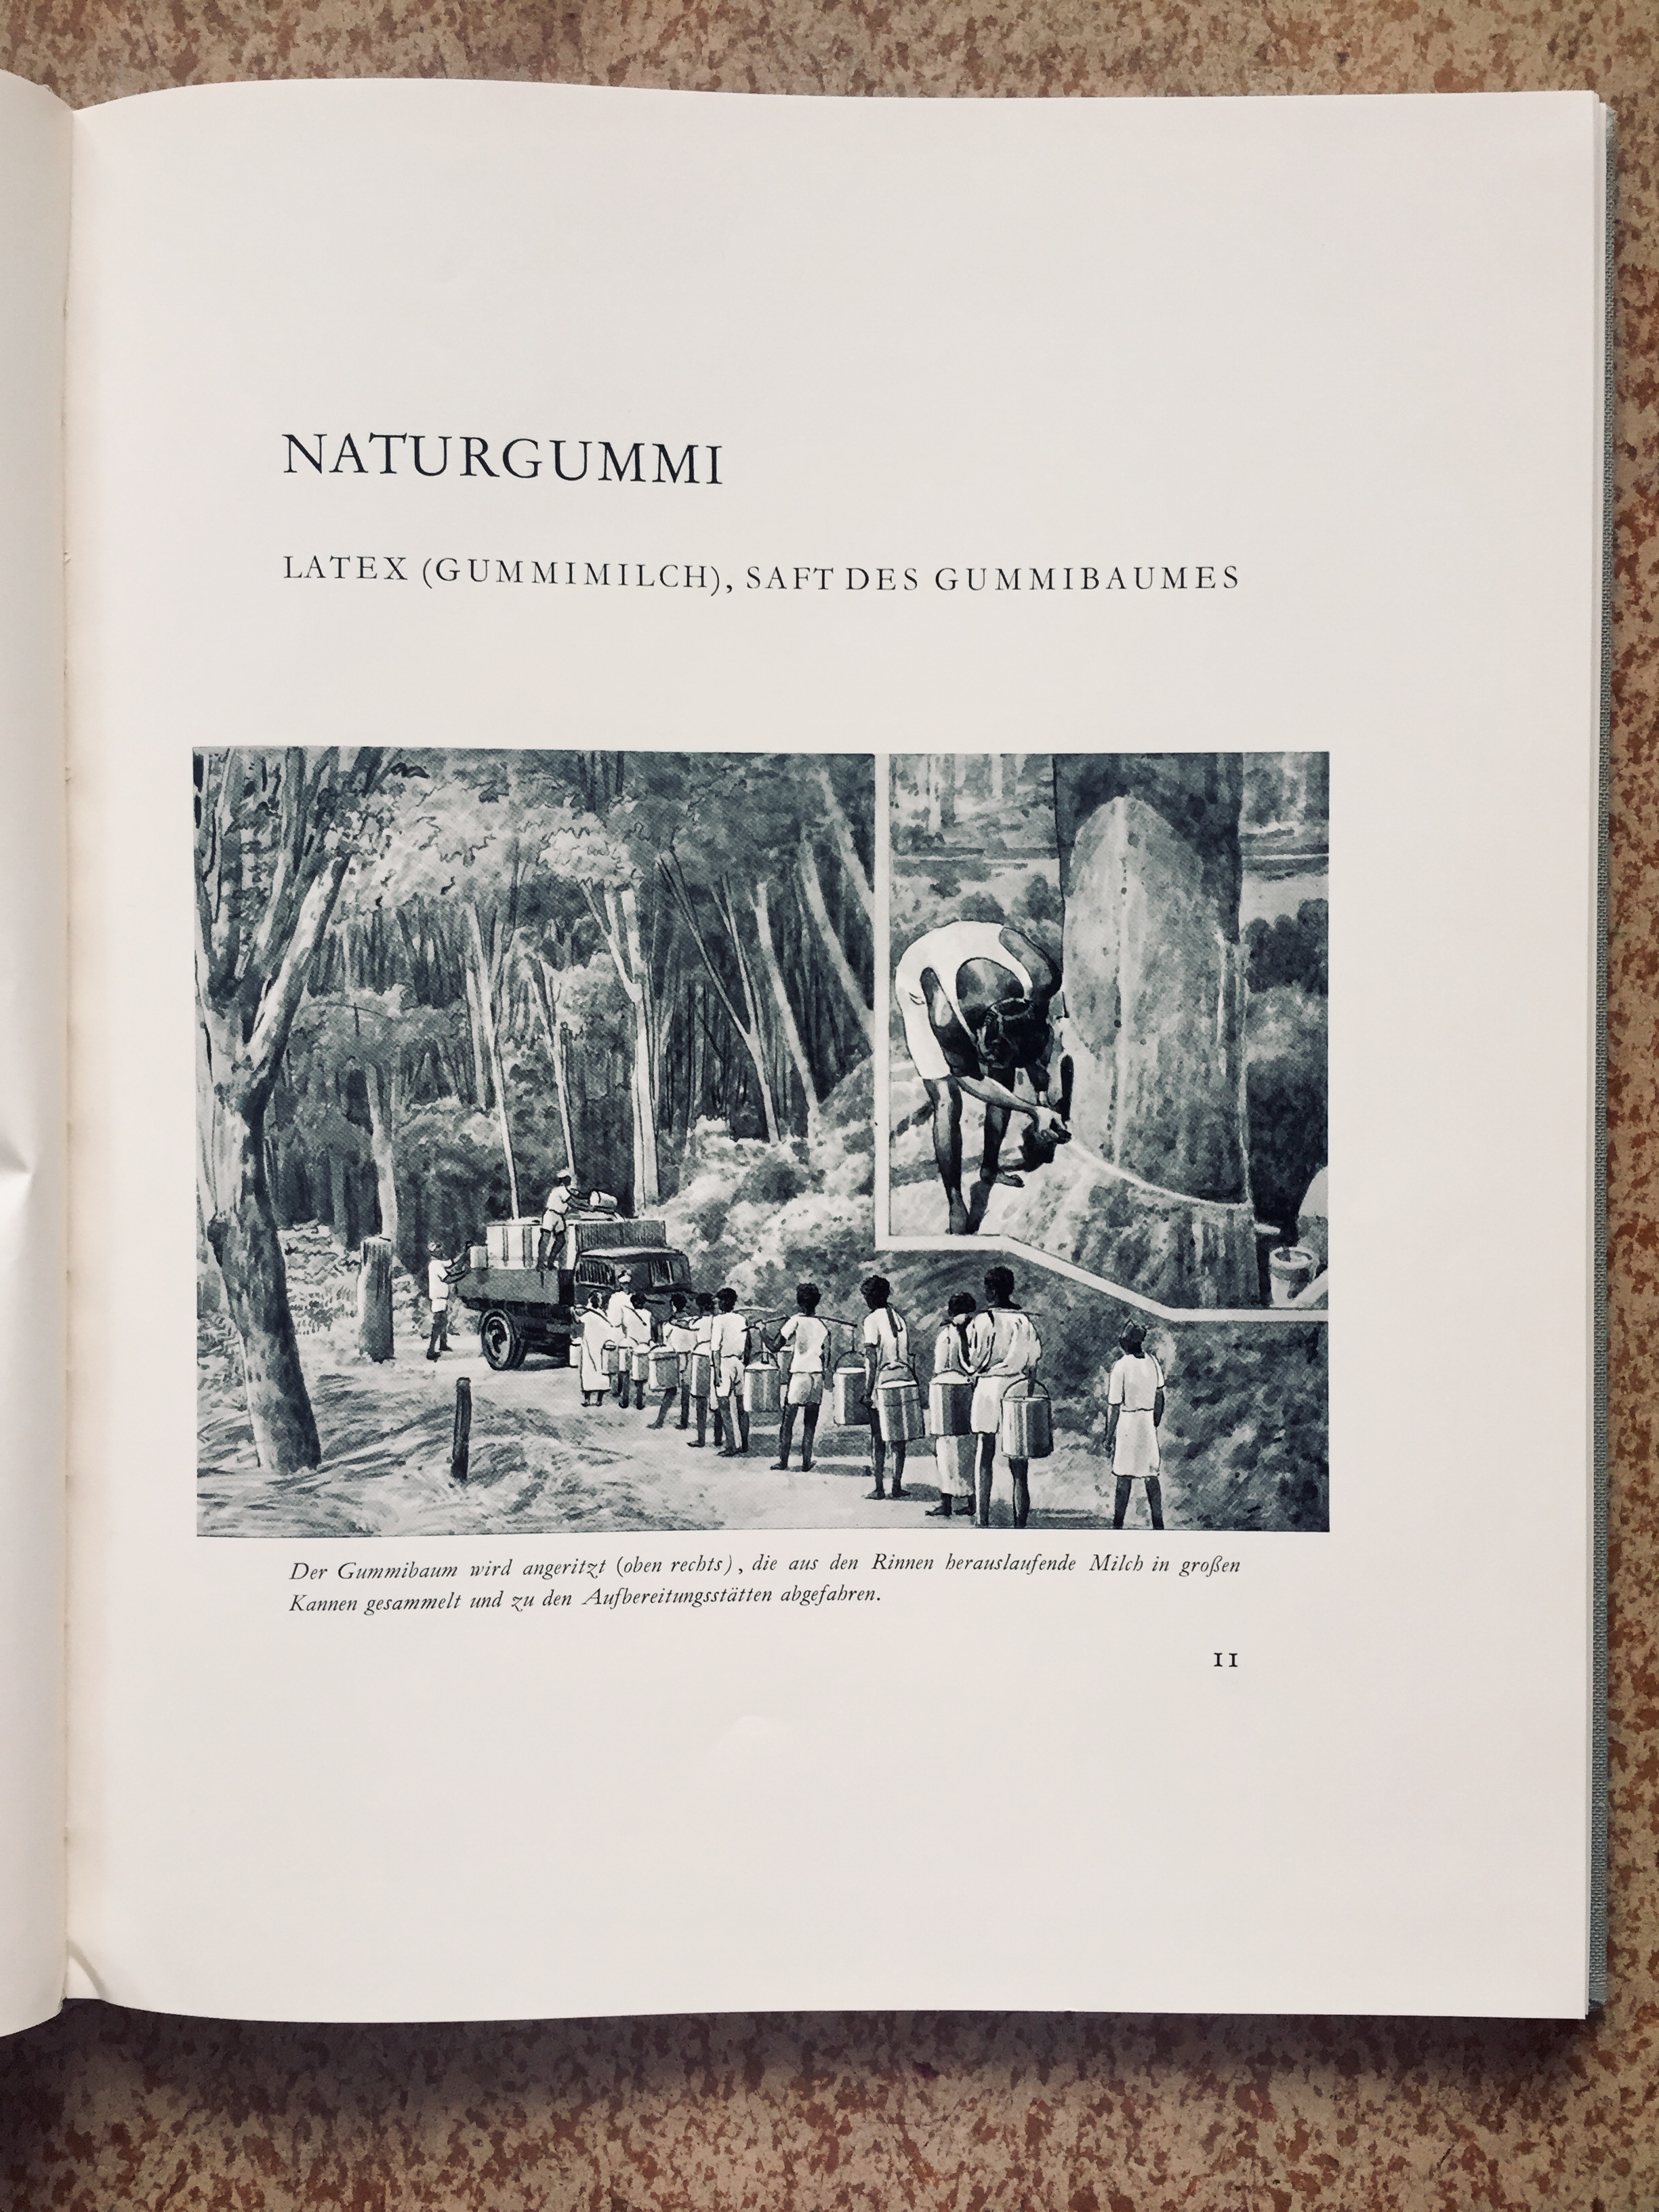 Festschrift illustration of workers on a rubber plantation, 1957